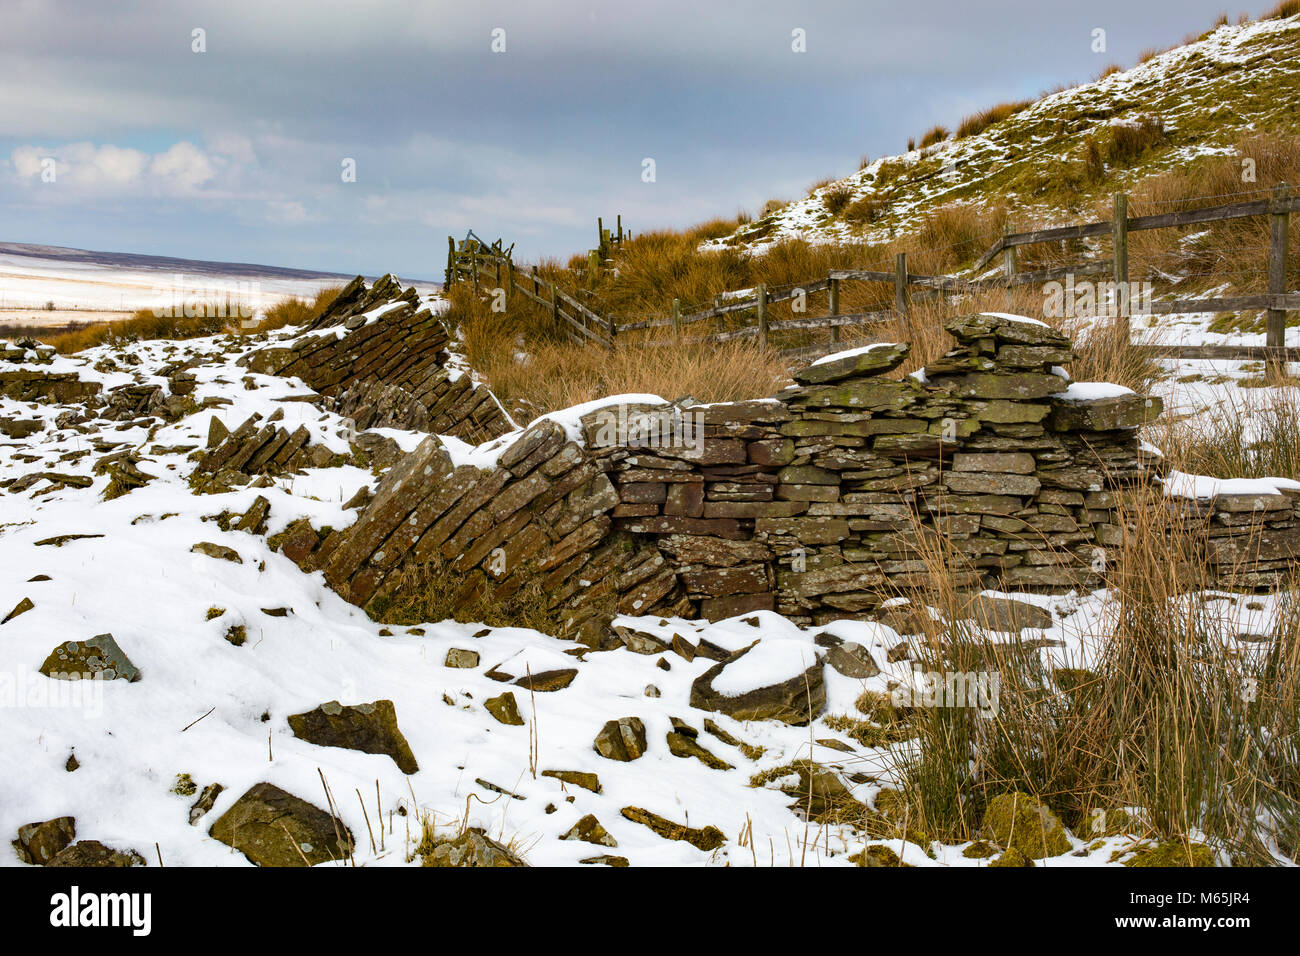 Darwen Moor and surroundings. Part of the West Pennine Moors a Site of Special Scientific Interest. Stock Photo